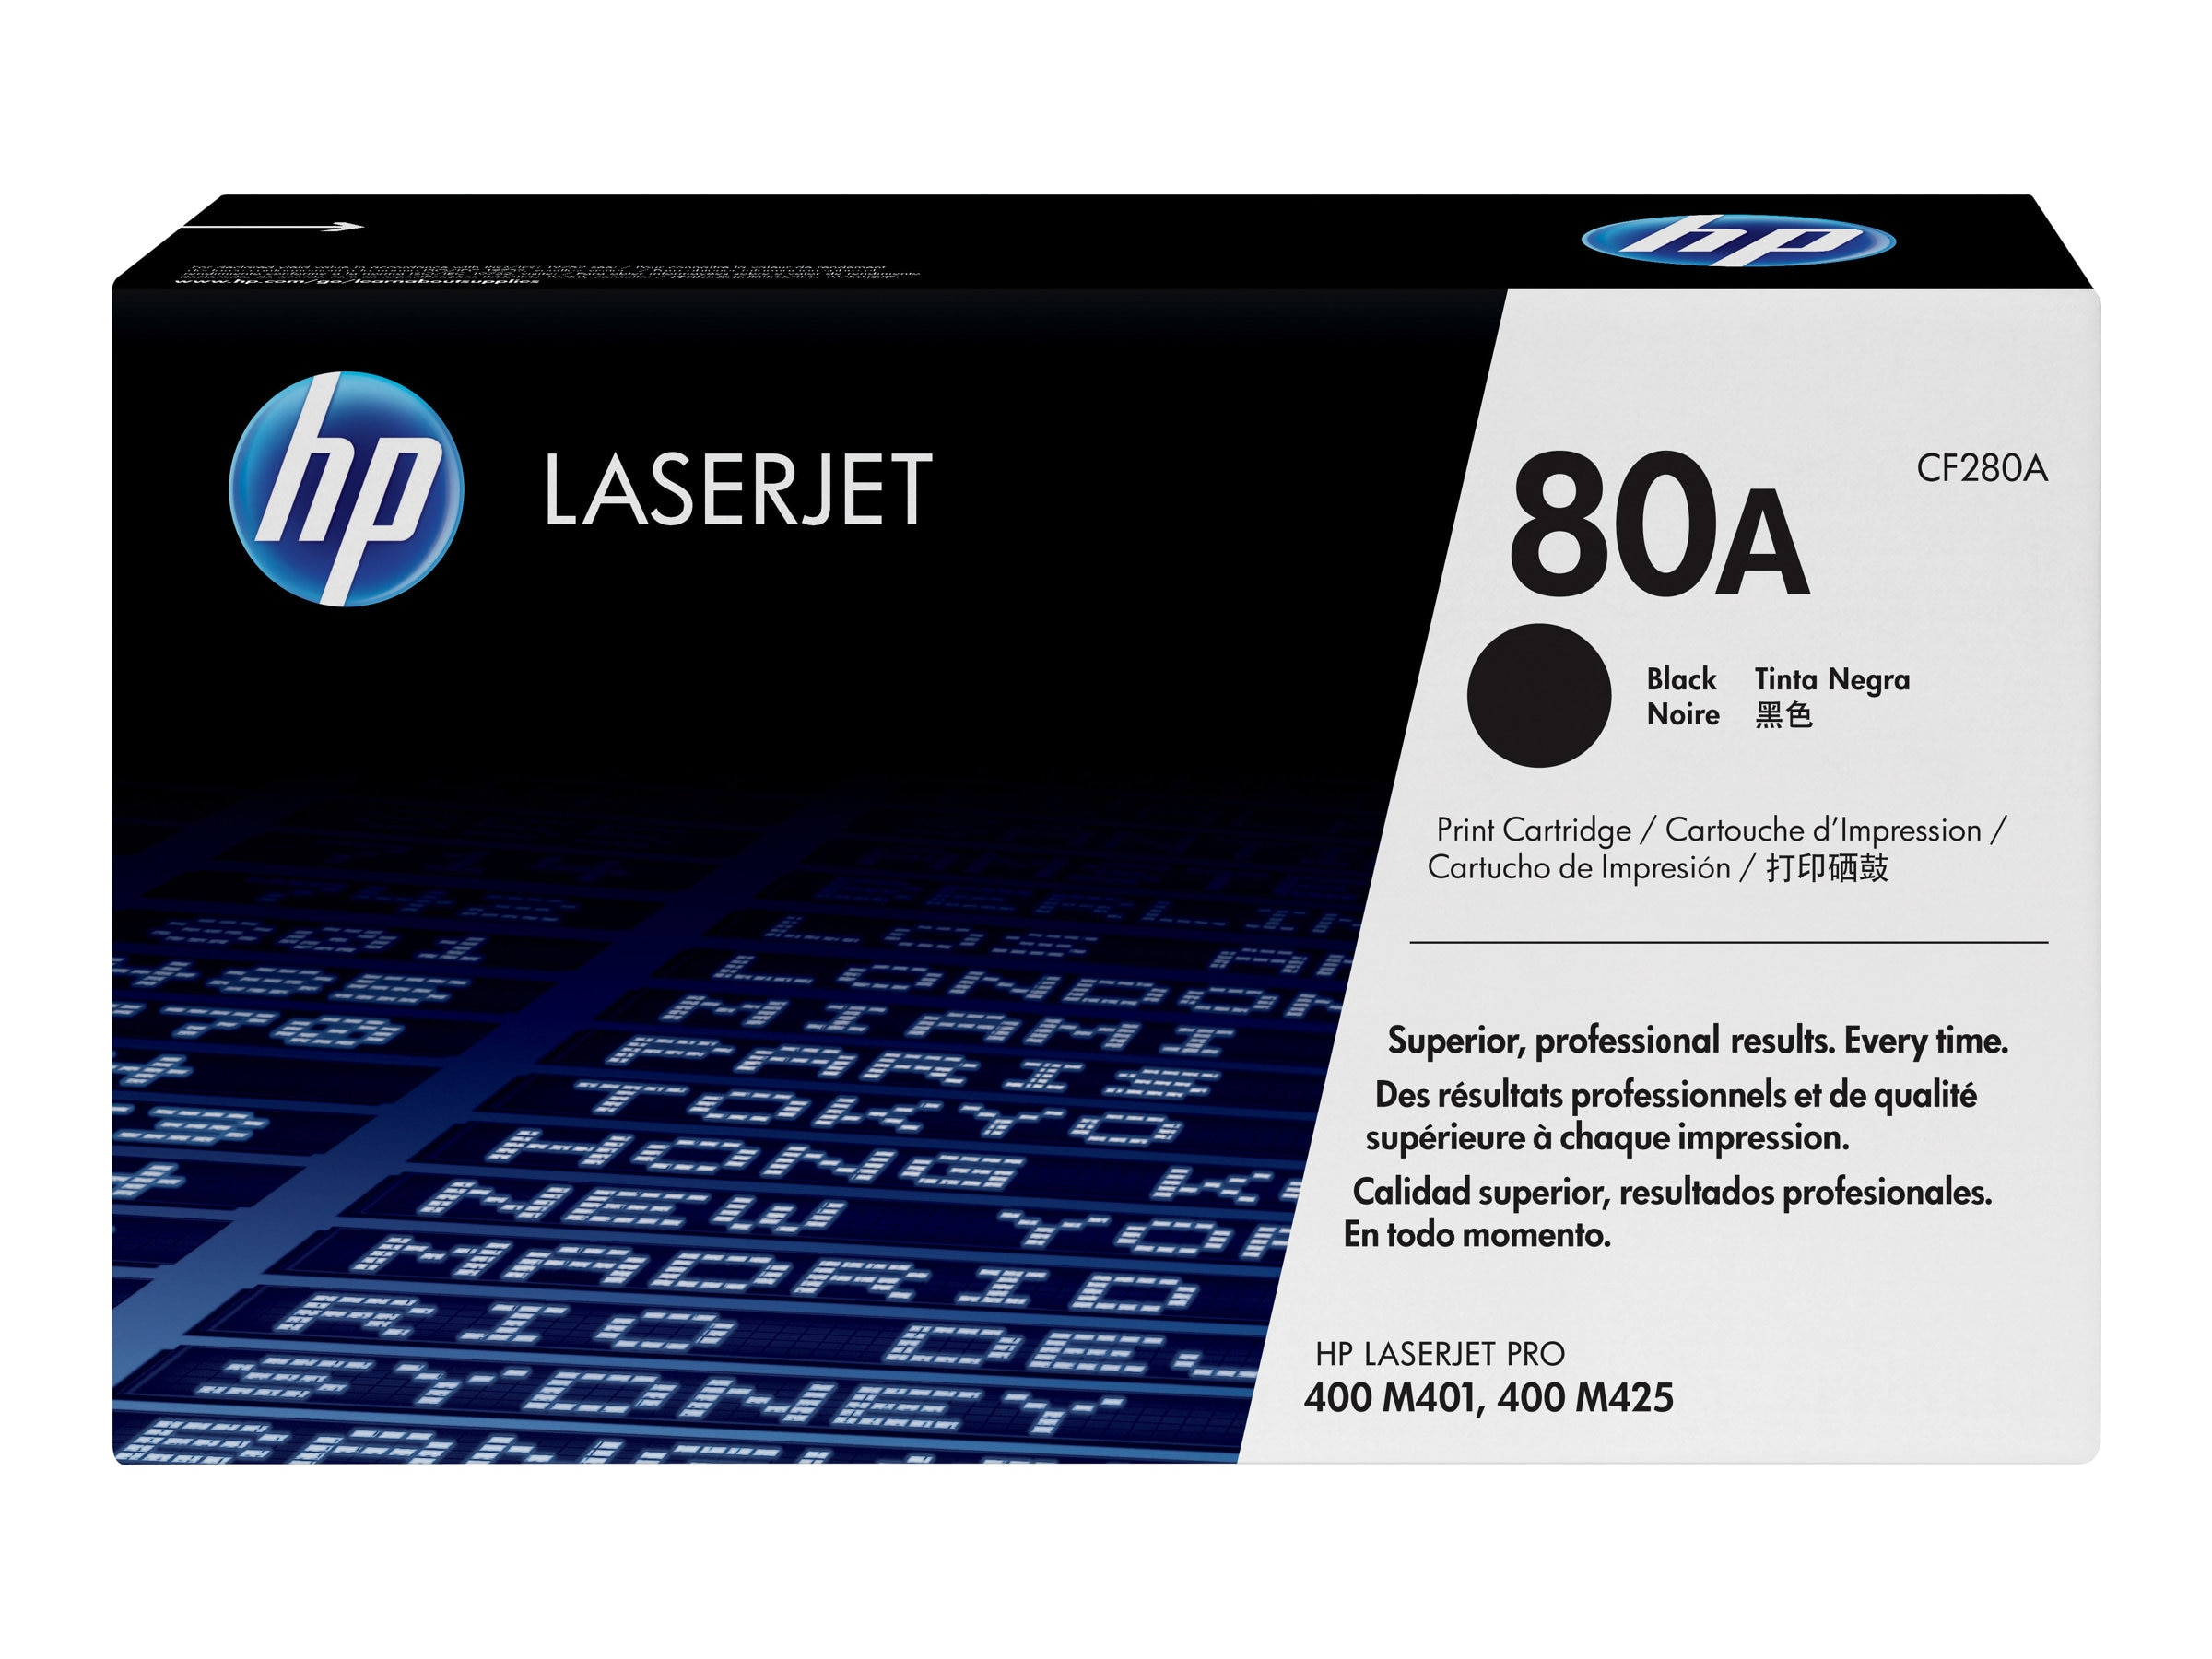 HP 80A (CF280A) Black Original LaserJet Toner Cartridge for HP LaserJet Pro 400 M401 Series, CF280A